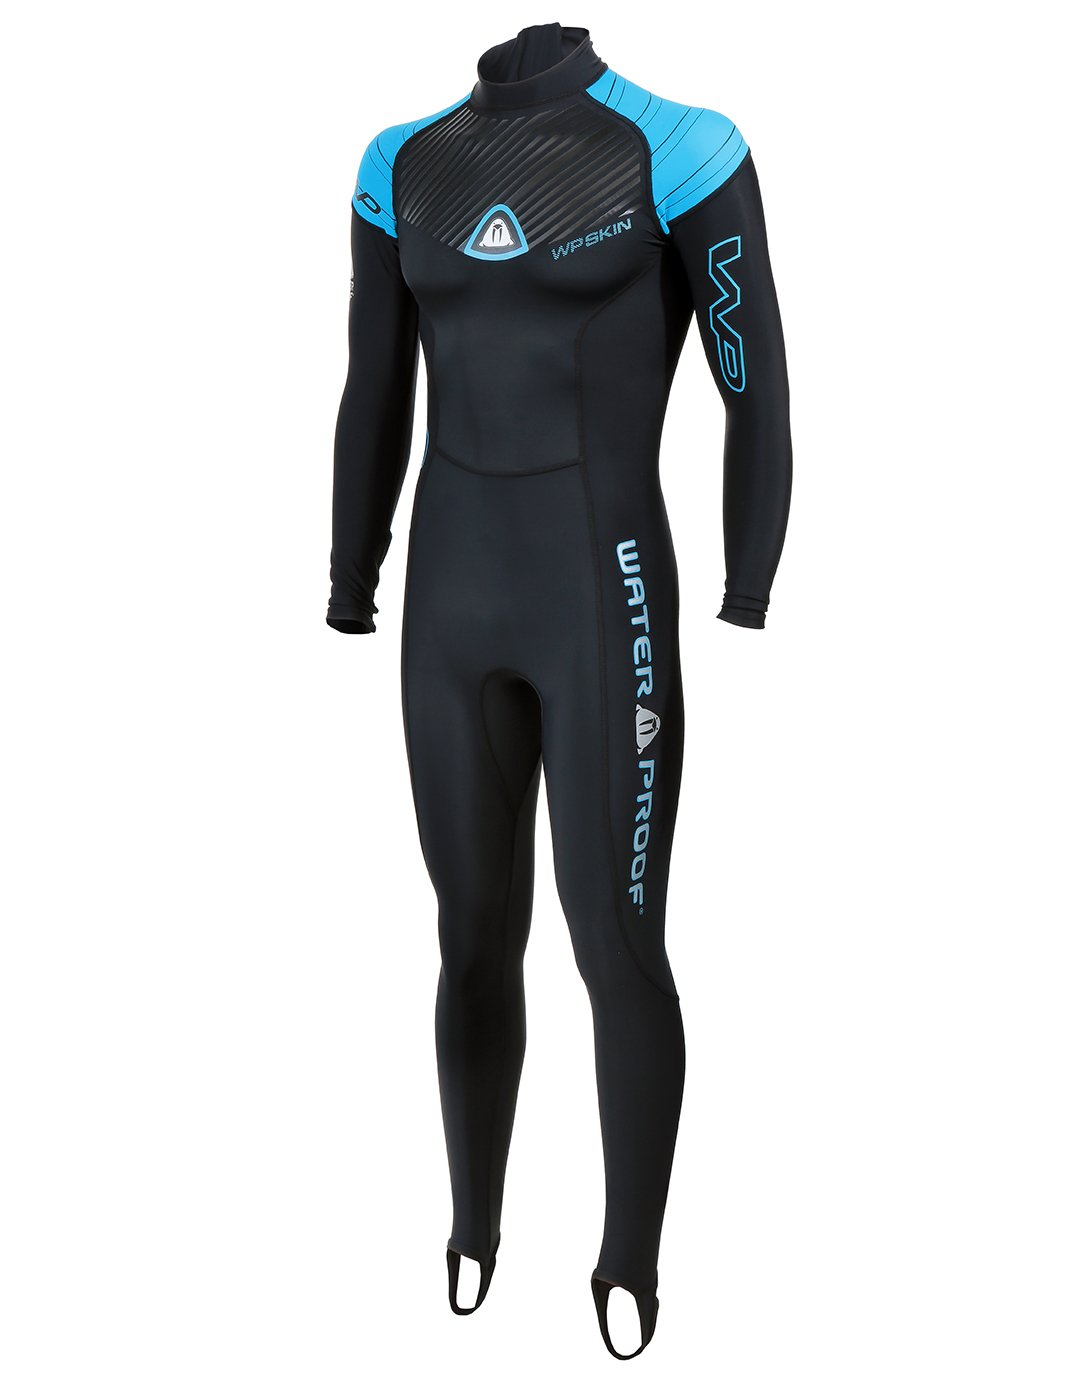 Image of WaterProof WP Skin Mens Rashguard